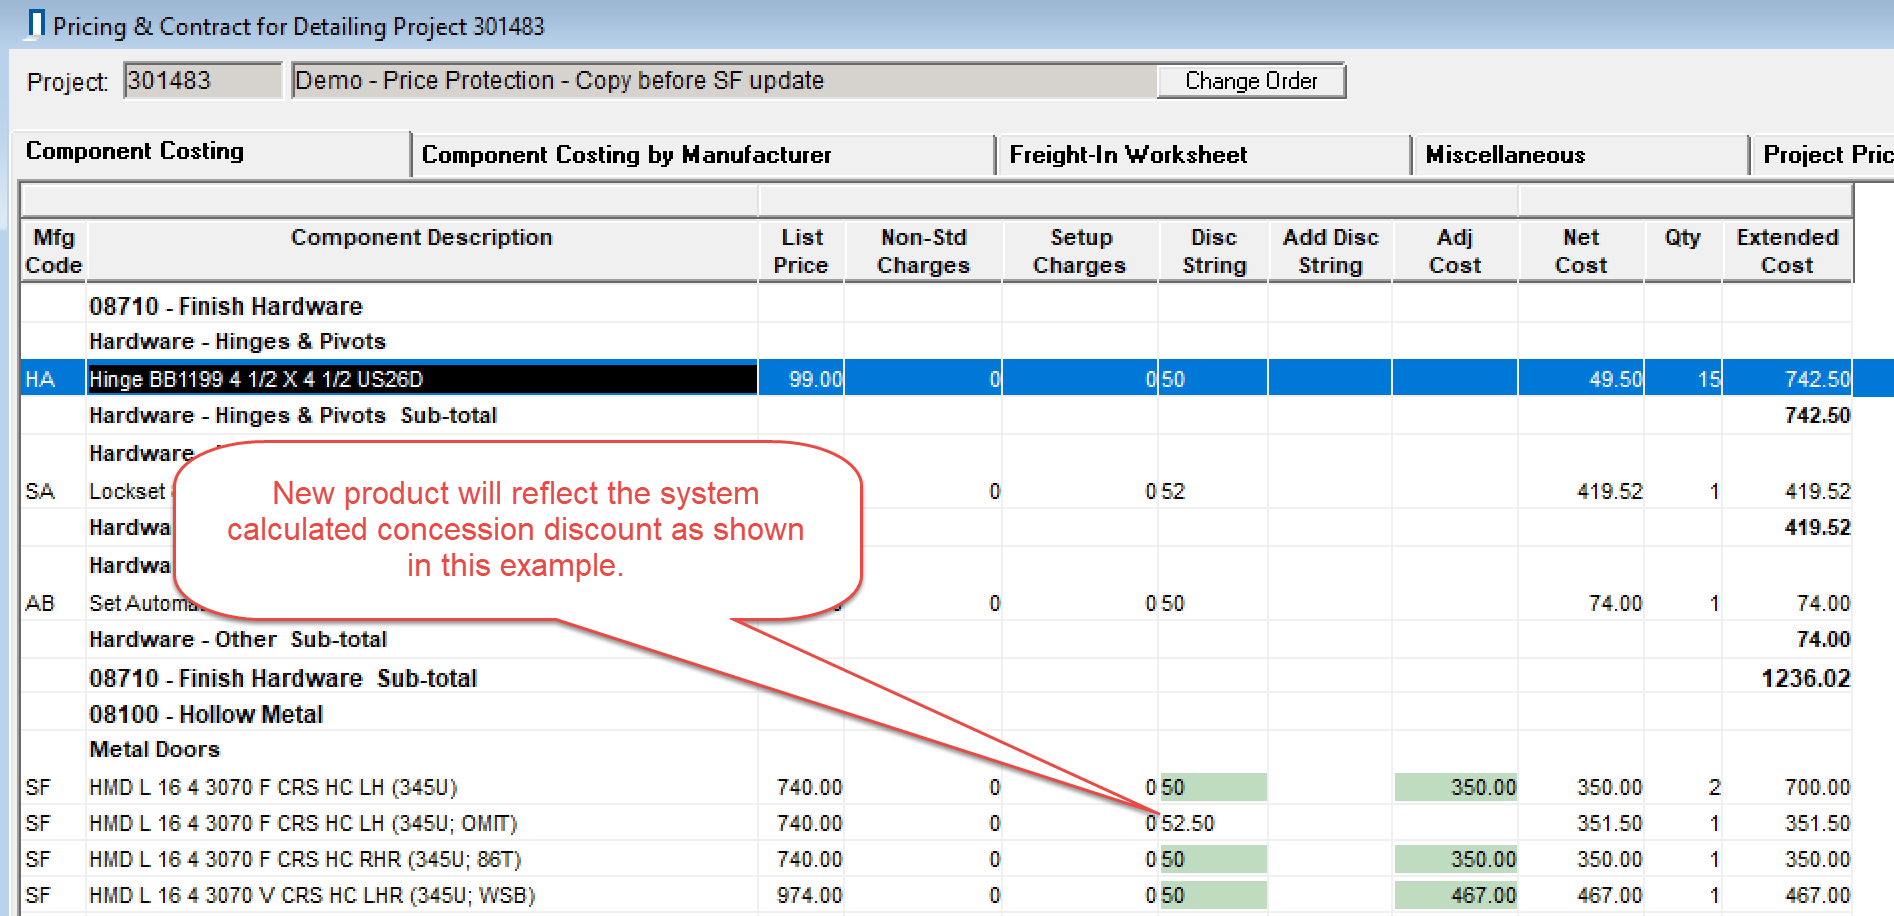 Pricing & Contract for Detailing window; shows the Discount String column reflecting the system calculated discounts.